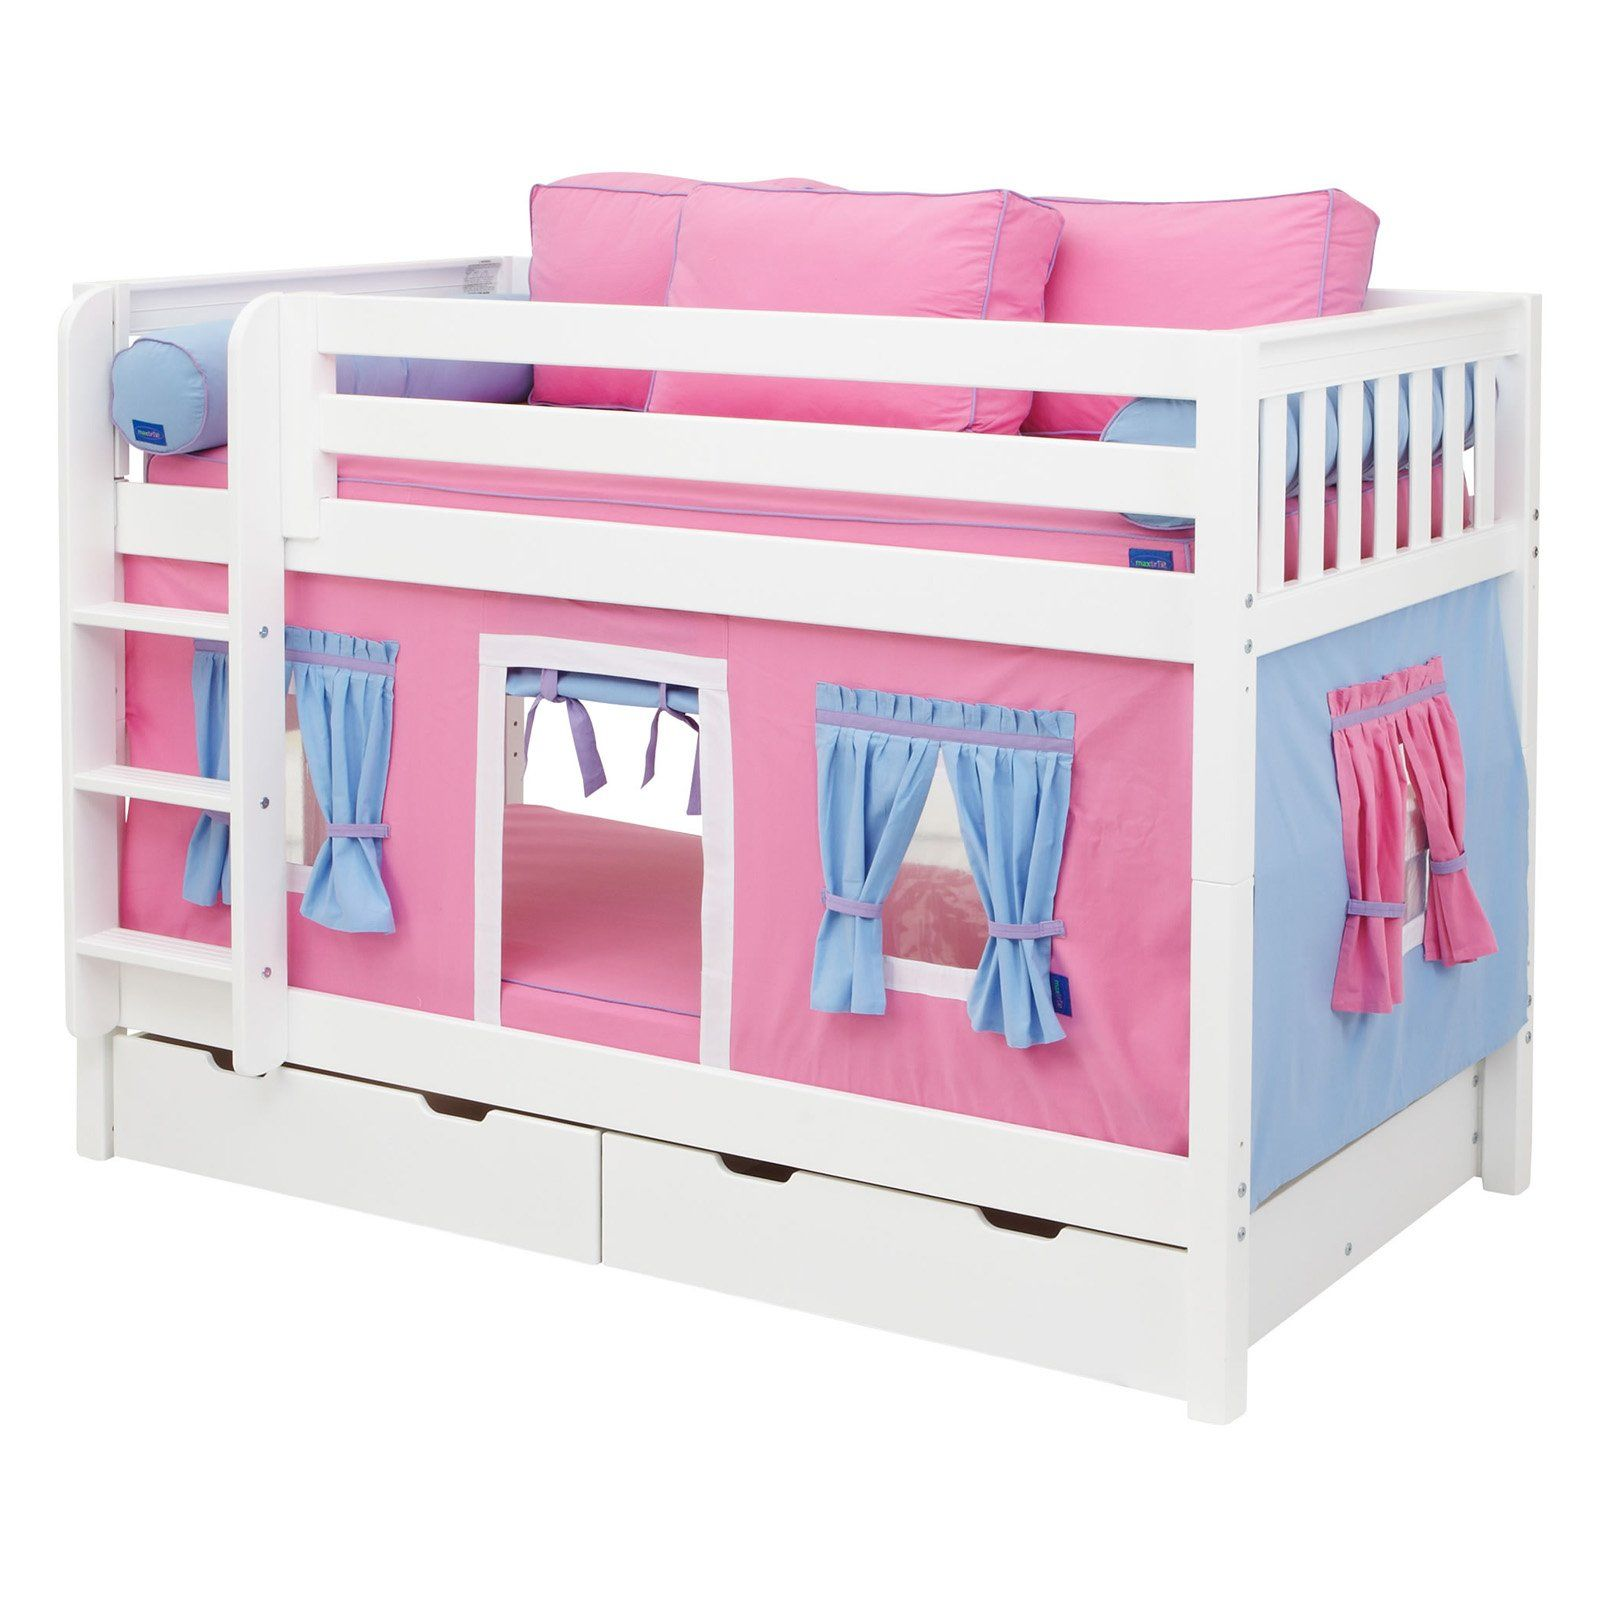 Pretty Beds For Girls Have To Have Ithot Shot Girl Twin Over Twin Tent Bunk Bed